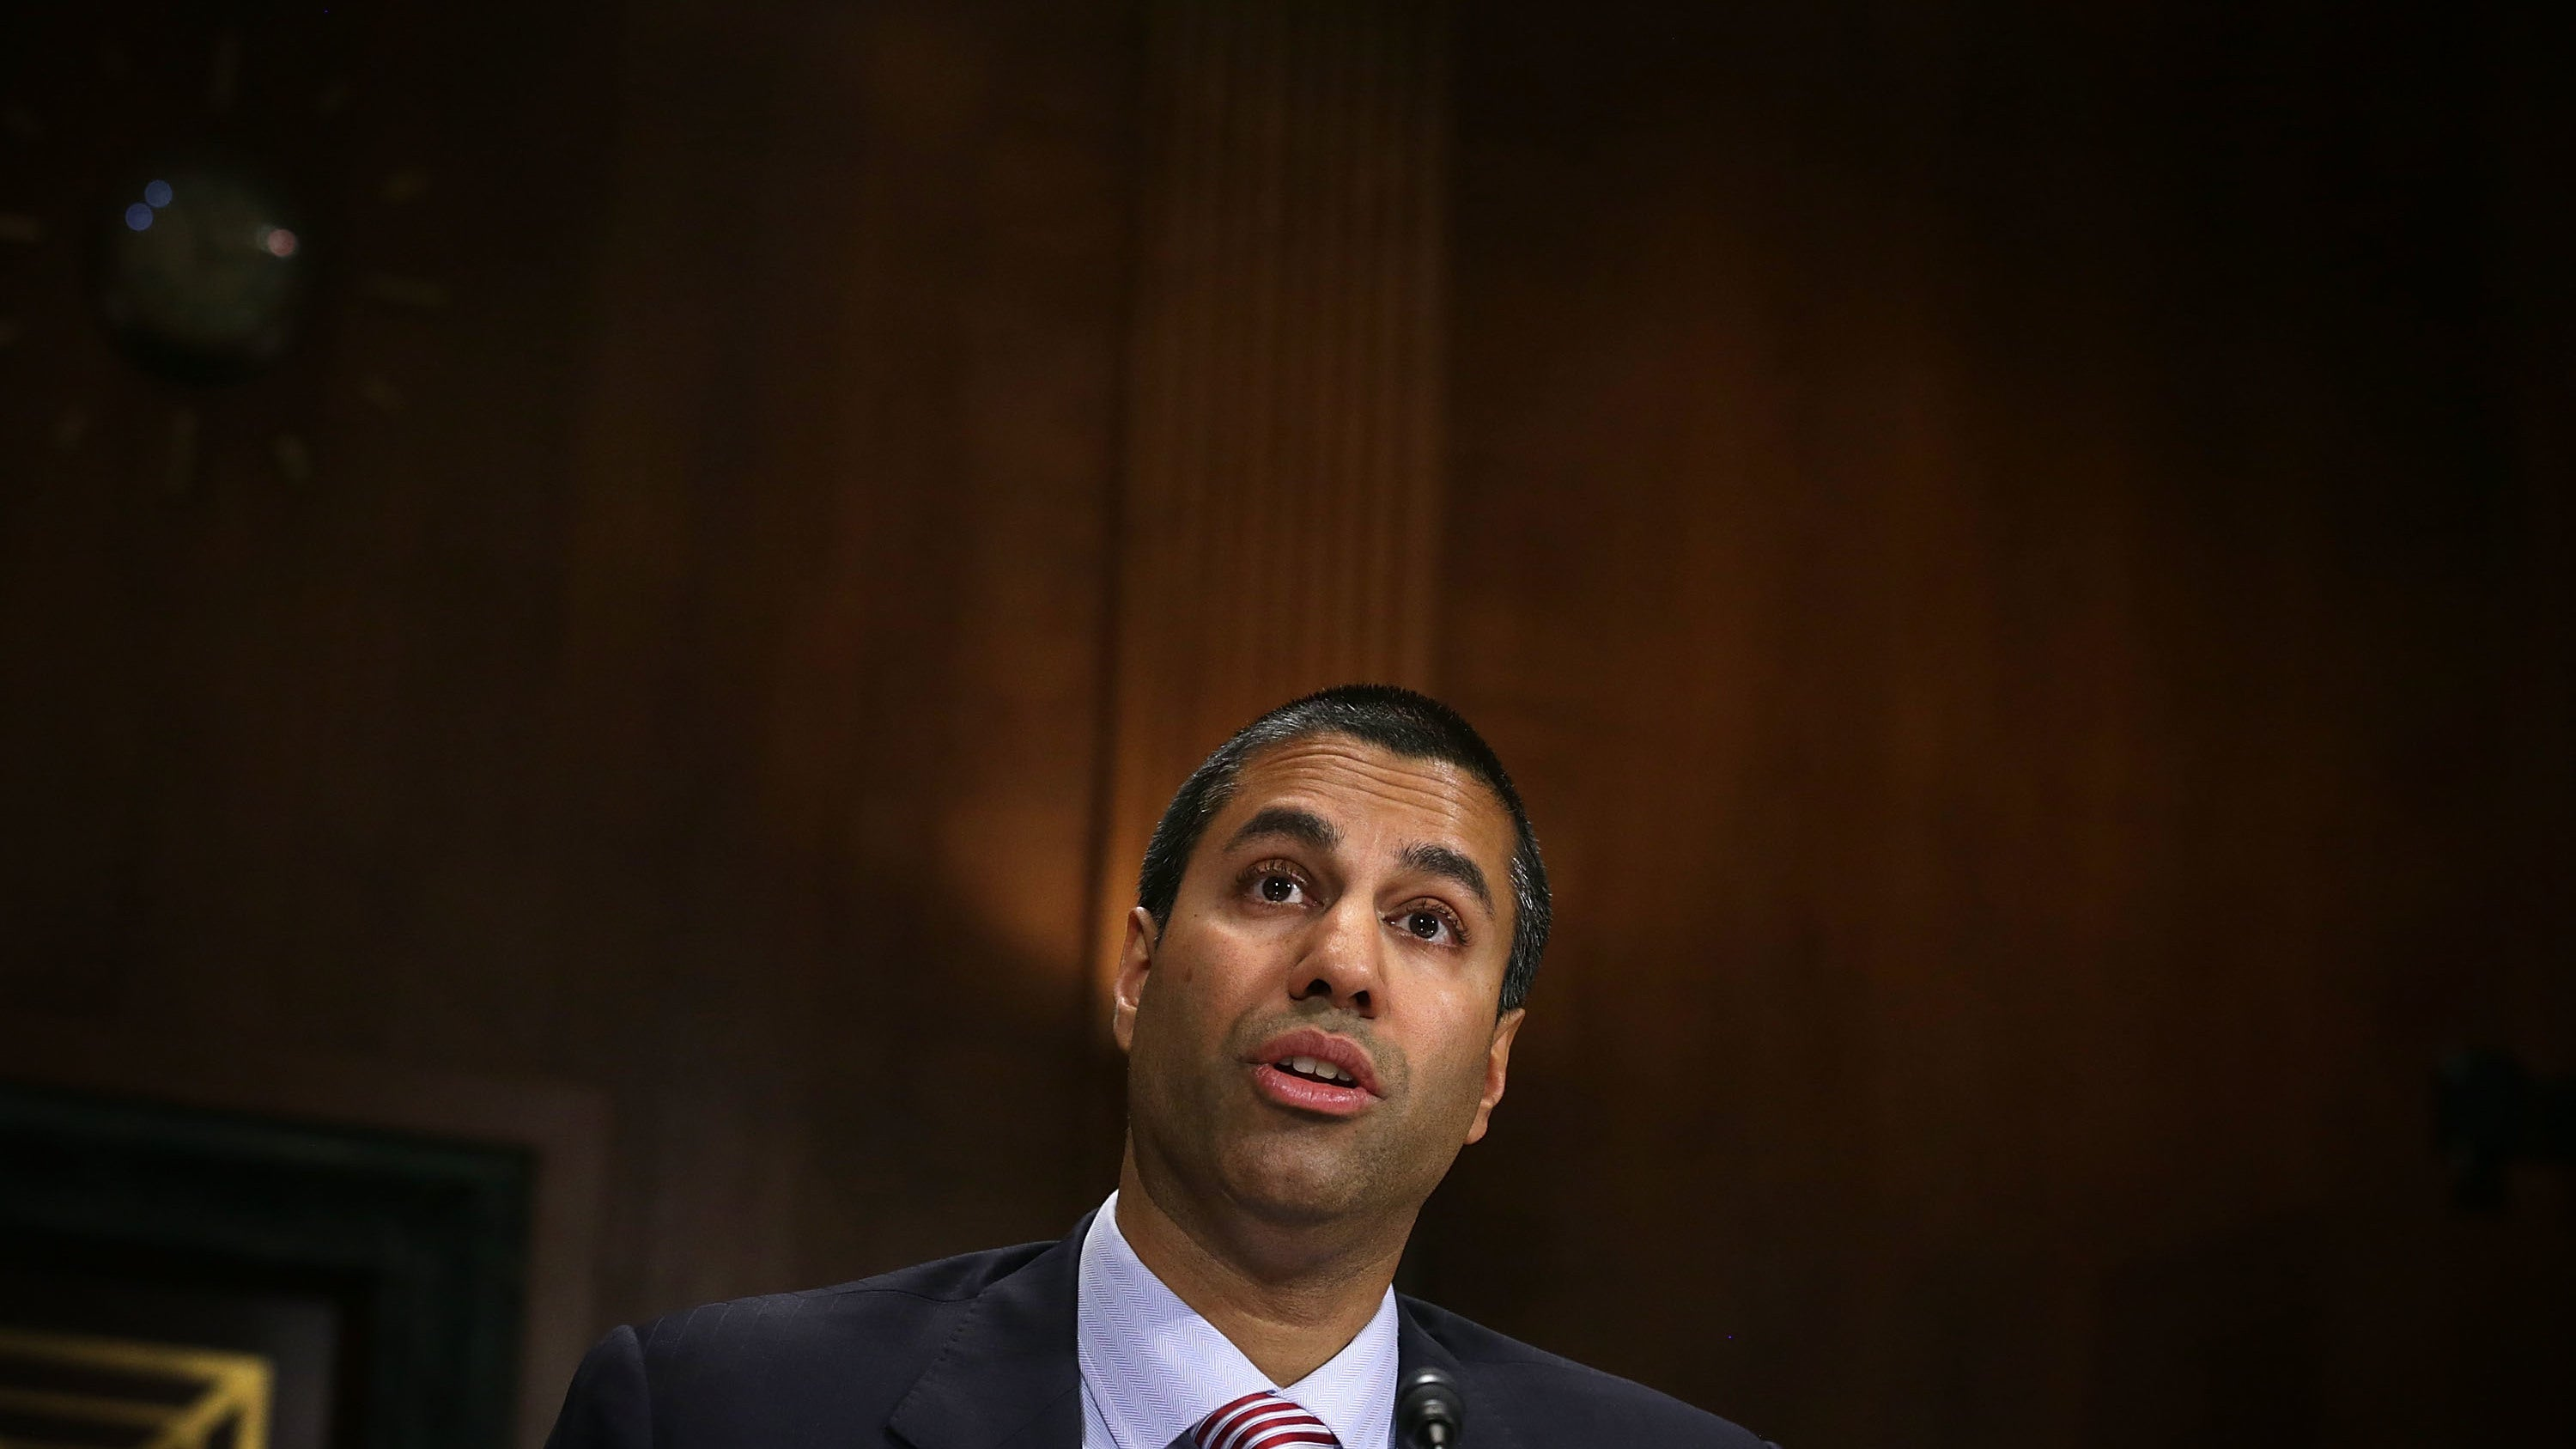 Ajit Pai Is Getting Grilled For Misleading US Congress Over Imaginary Cyberattacks